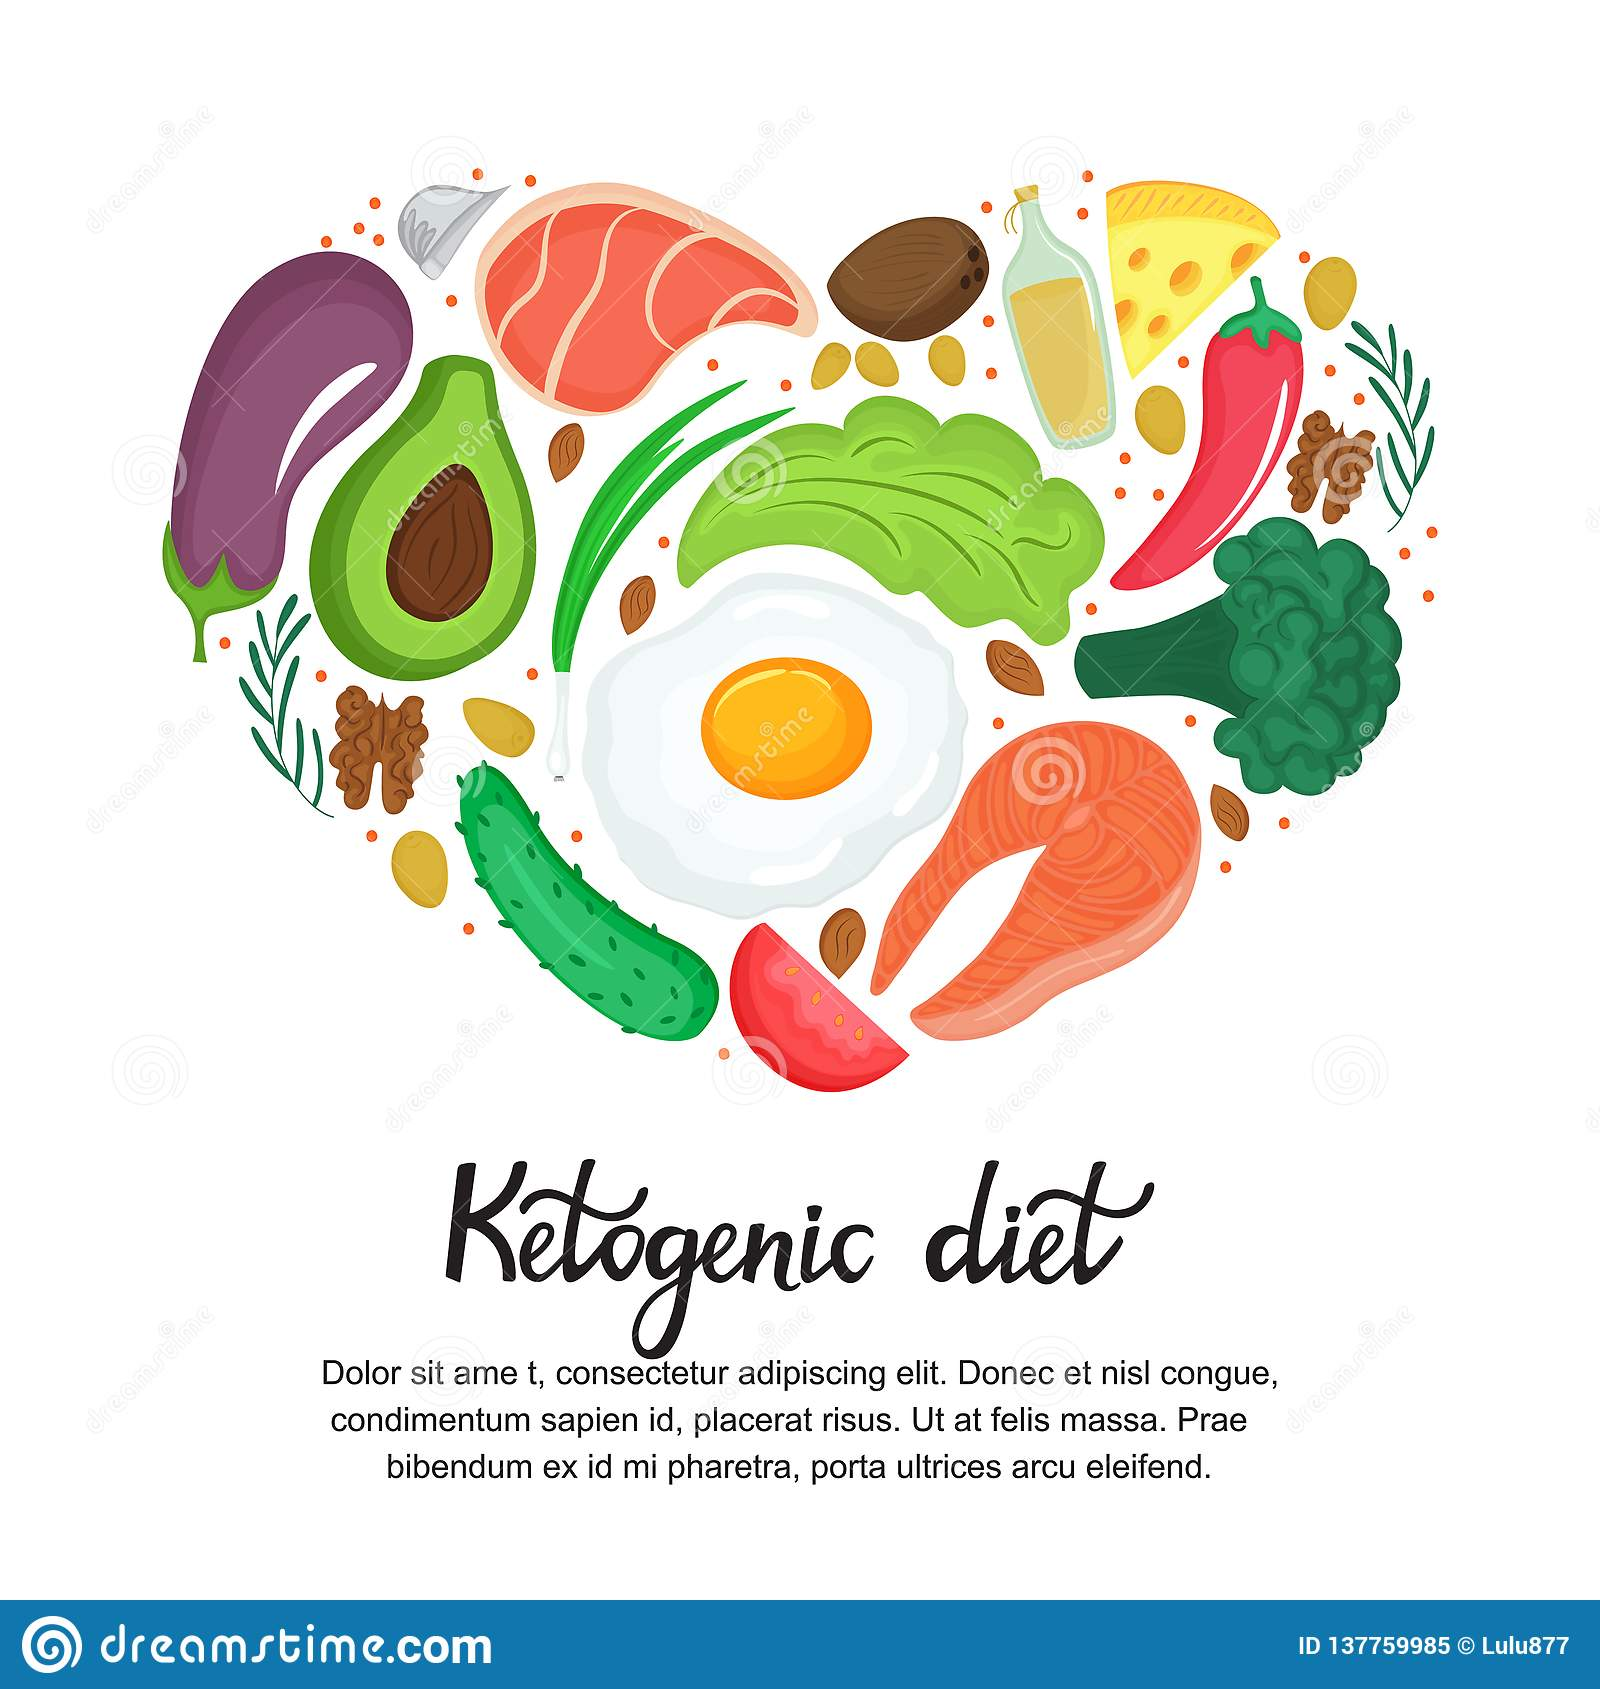 Healthy foods: vegetables, nuts, meat, fish. Heart shaped banner in cartoon style. Keto diet. Ketogenic nutrition